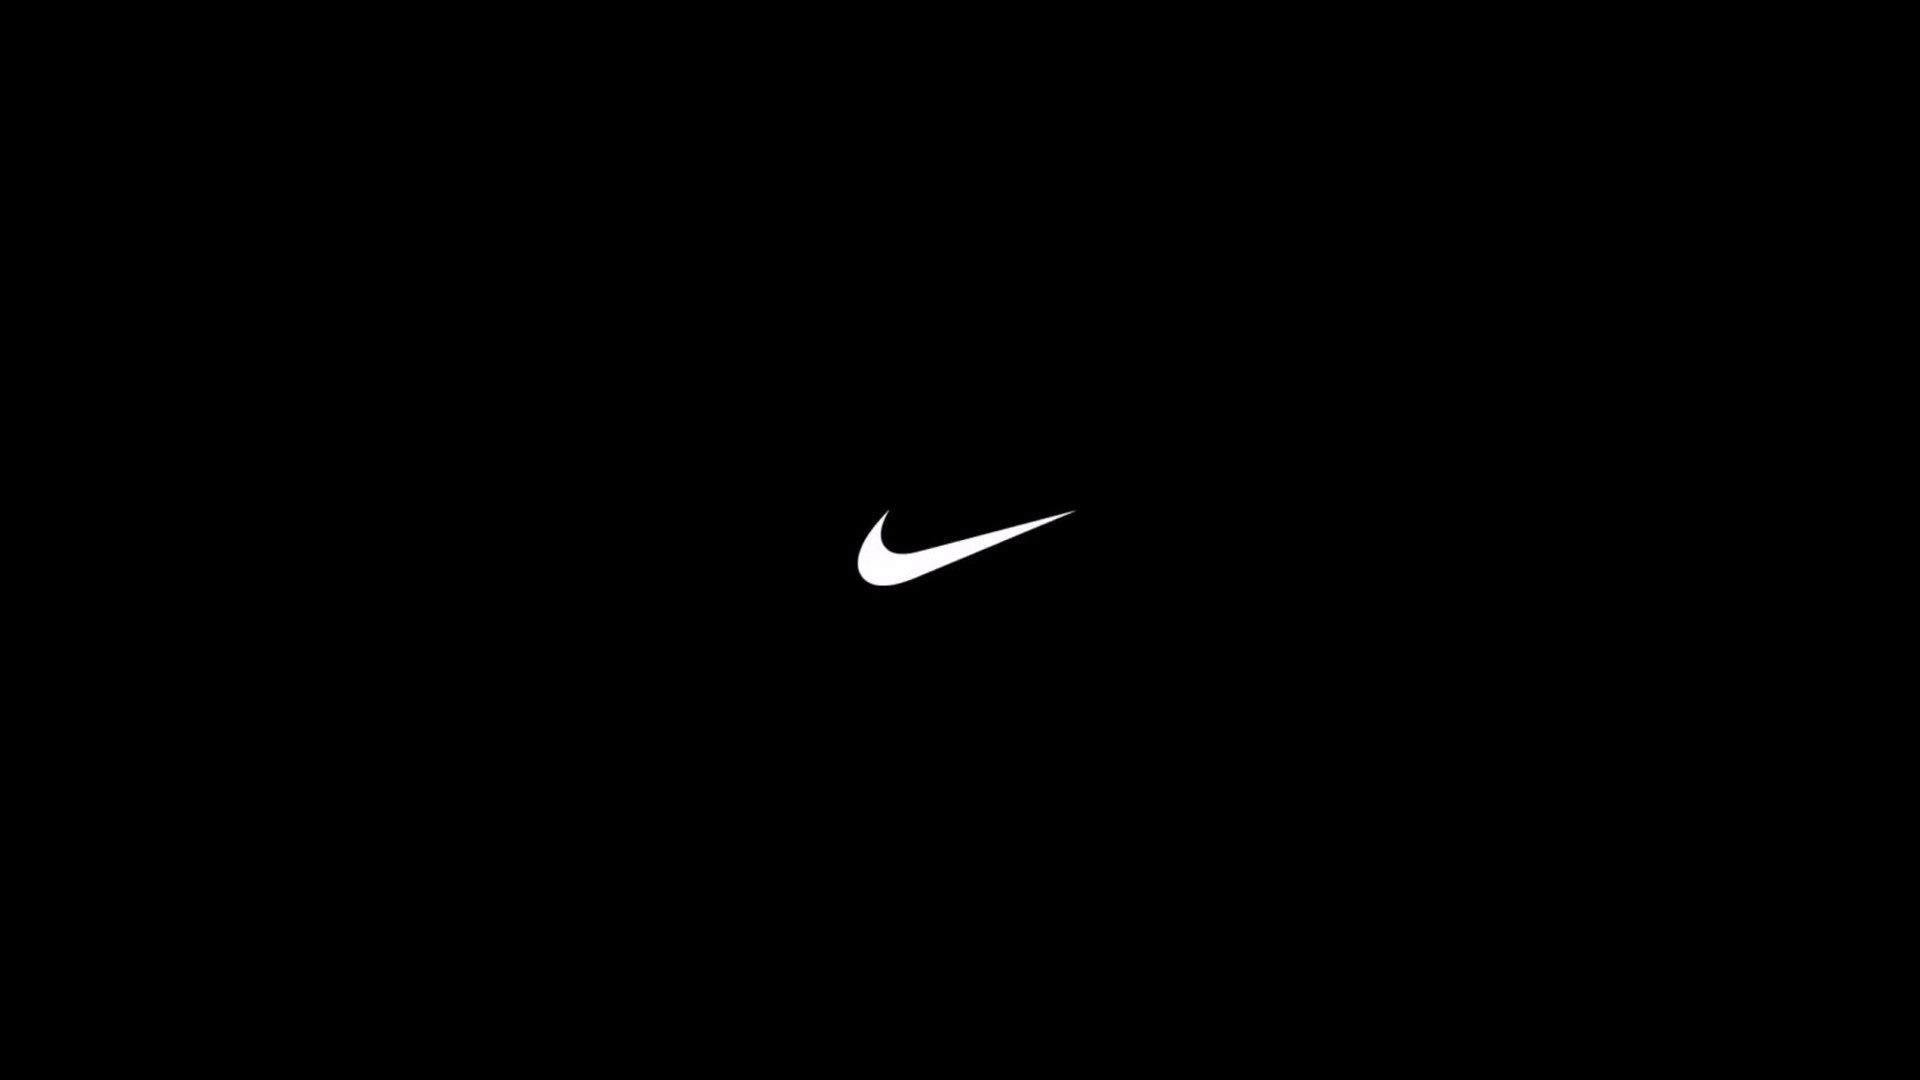 Nike Logo Wallpaper Iphone 4 The Best Image 2017